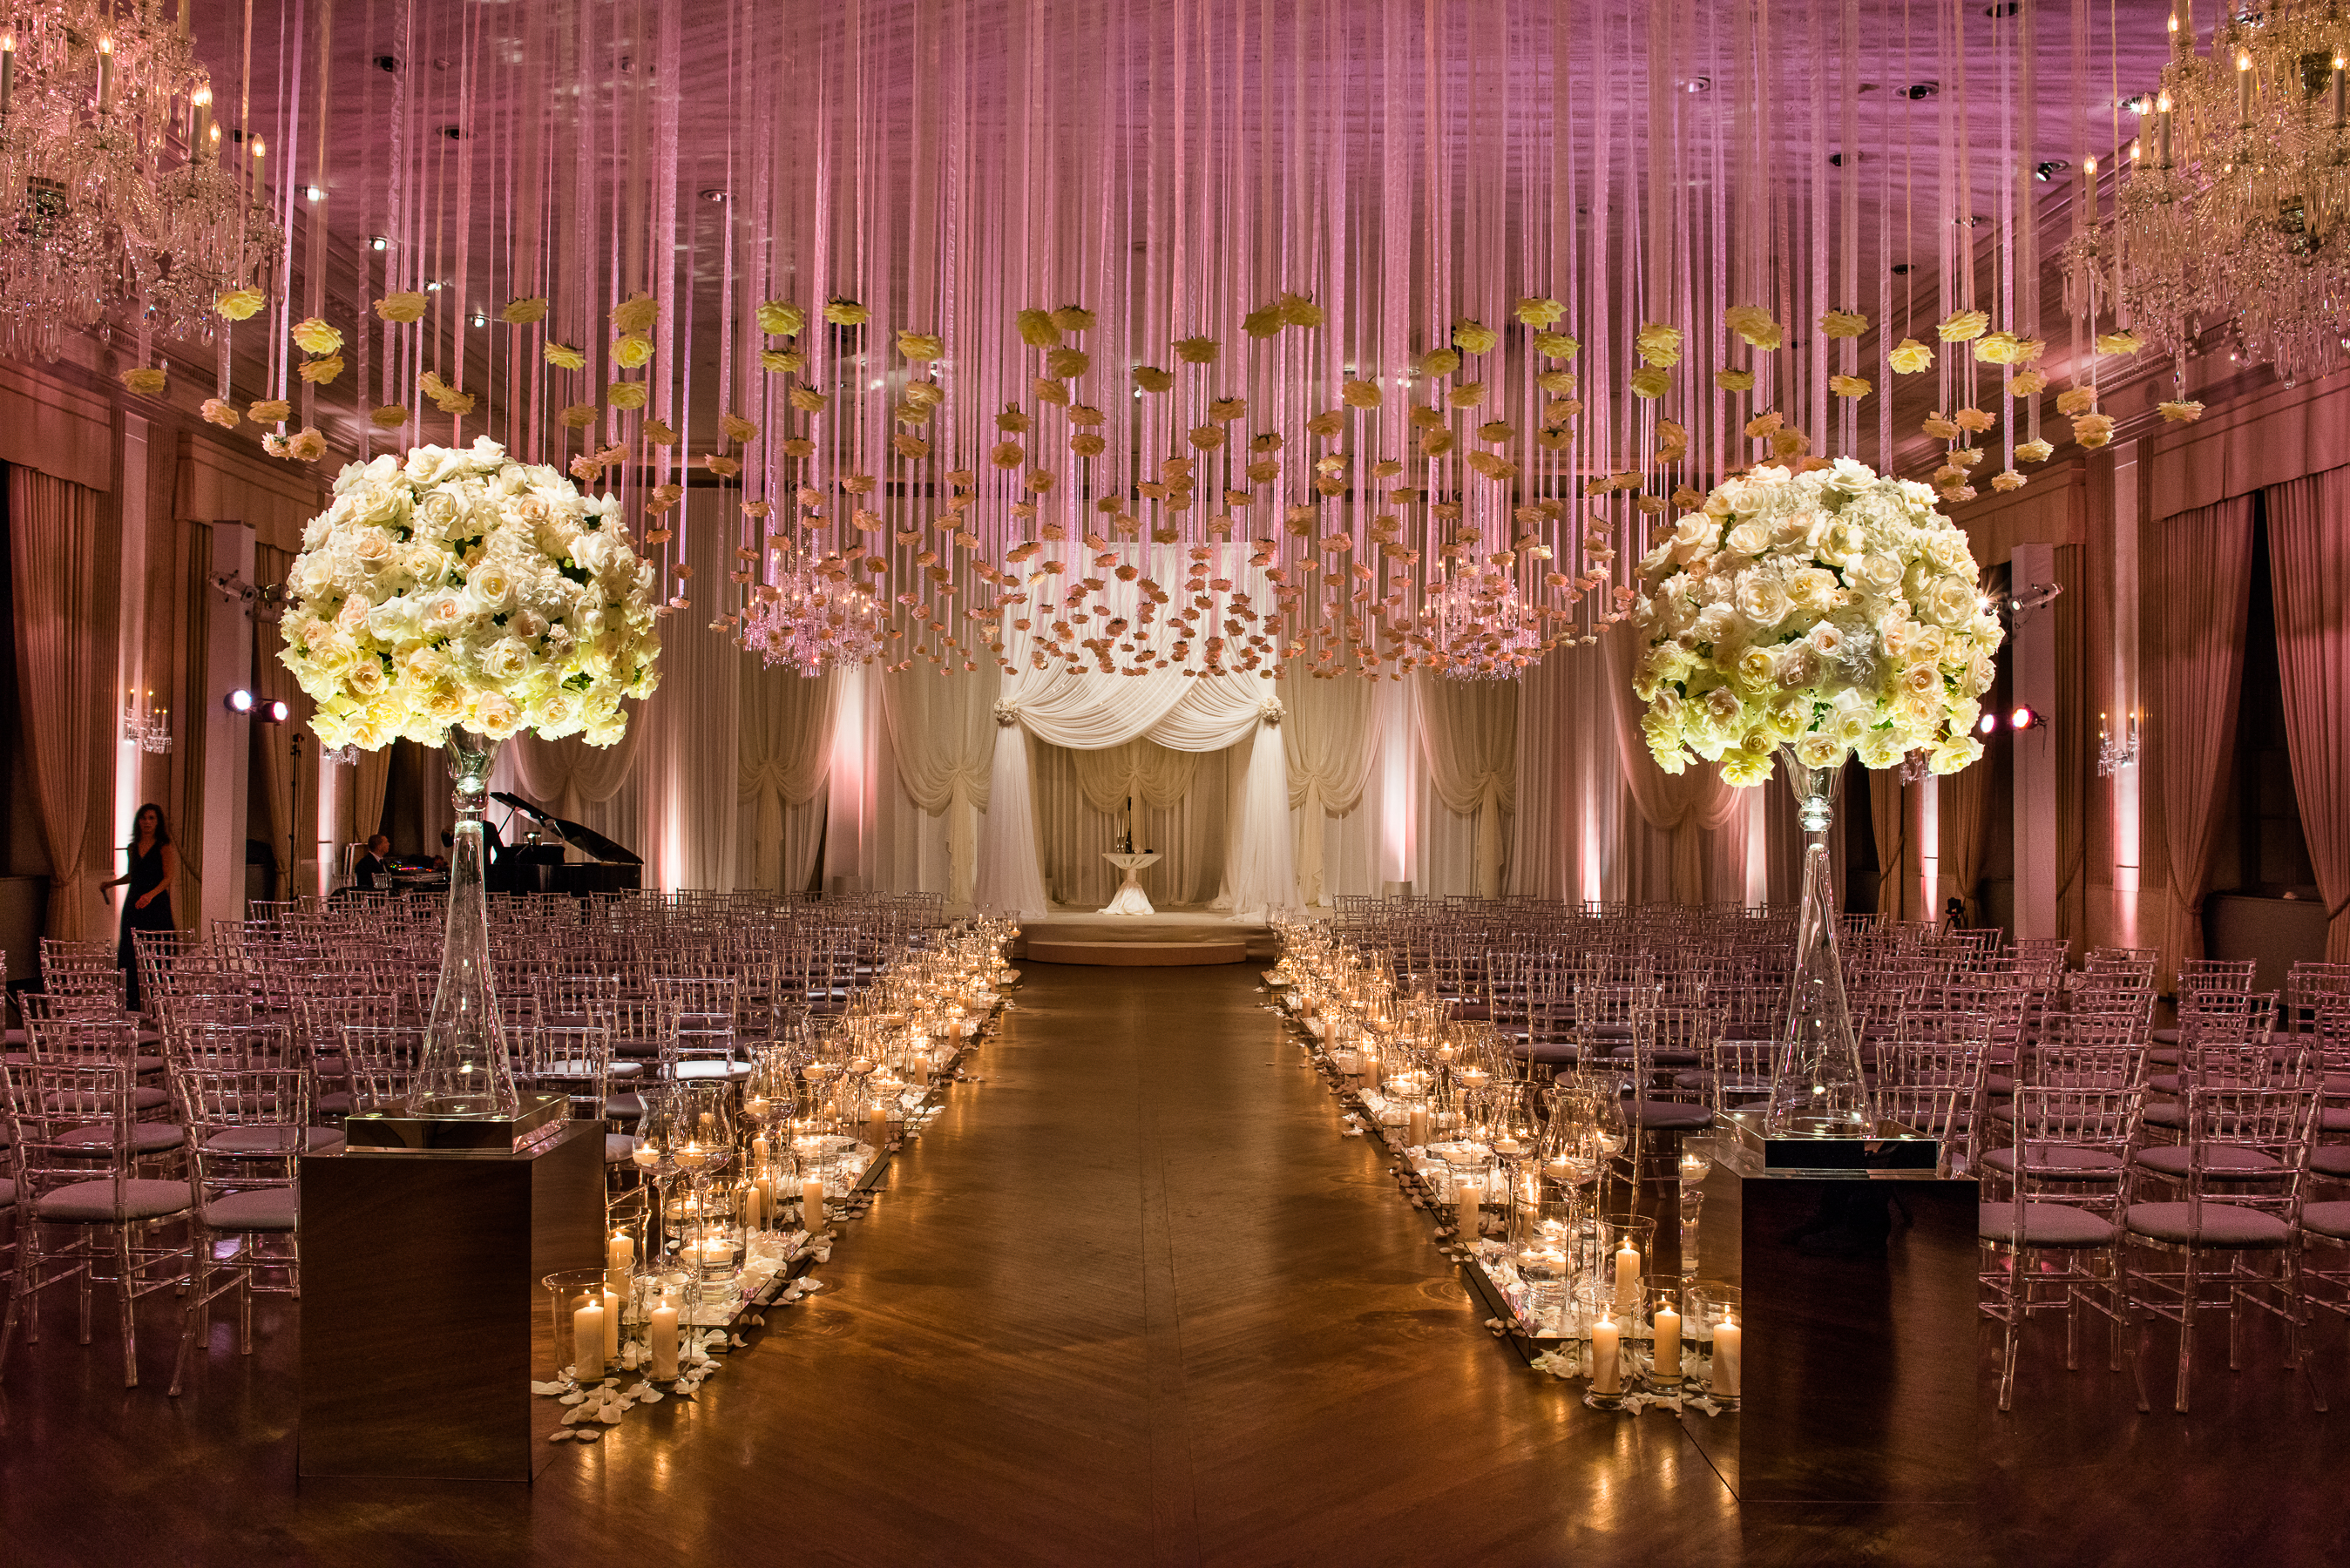 Individual roses were strung and suspended above a candlelit aisle strewn with ivory petals for a romantic Standard Club ceremony.